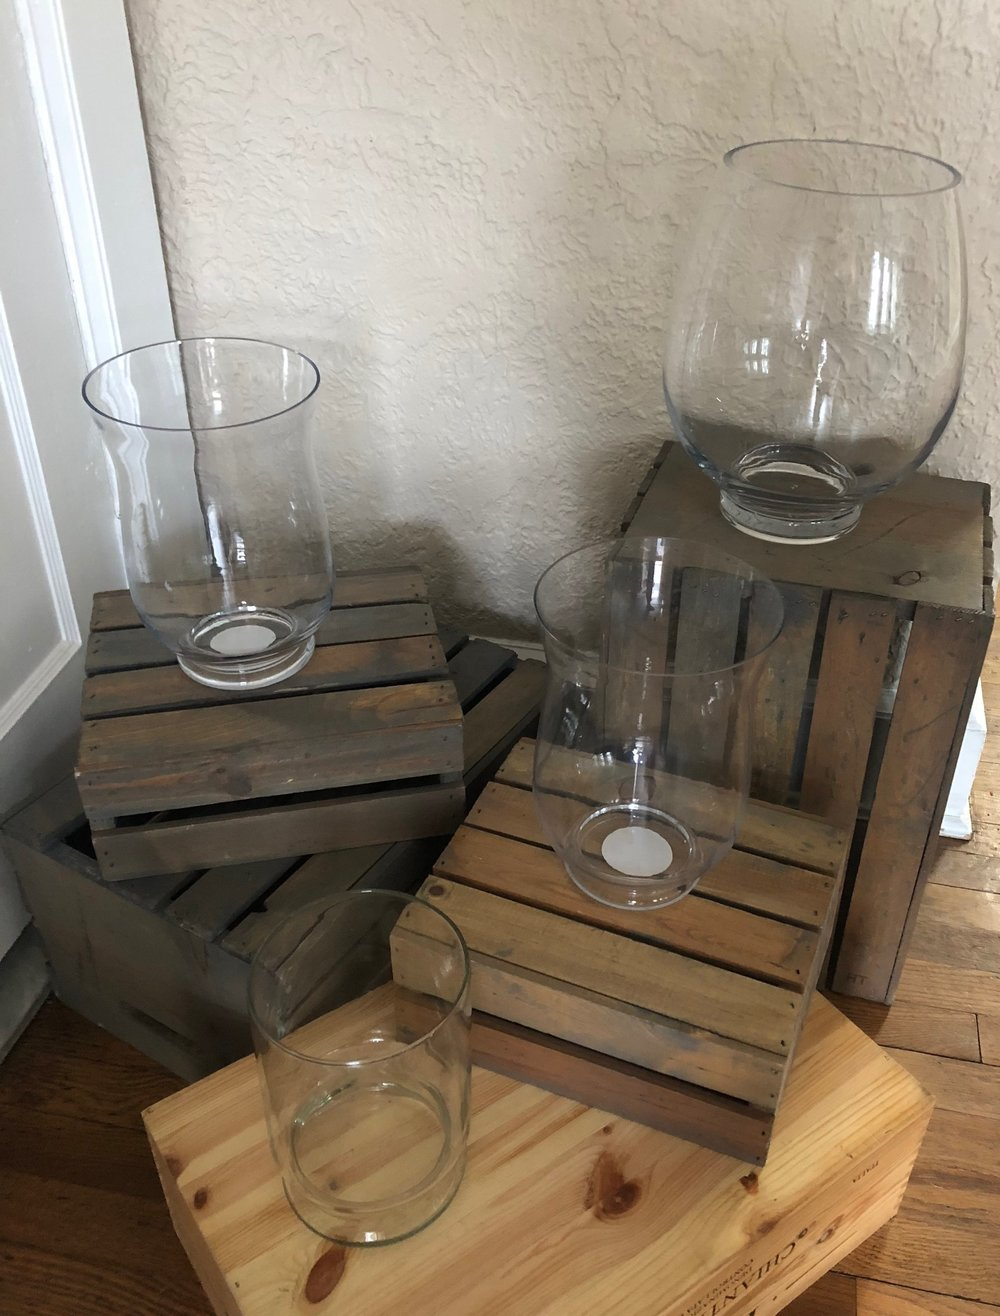 Large glass bowl/vase - (Upper right corner - has mostly been used for a card holder on the gift table)